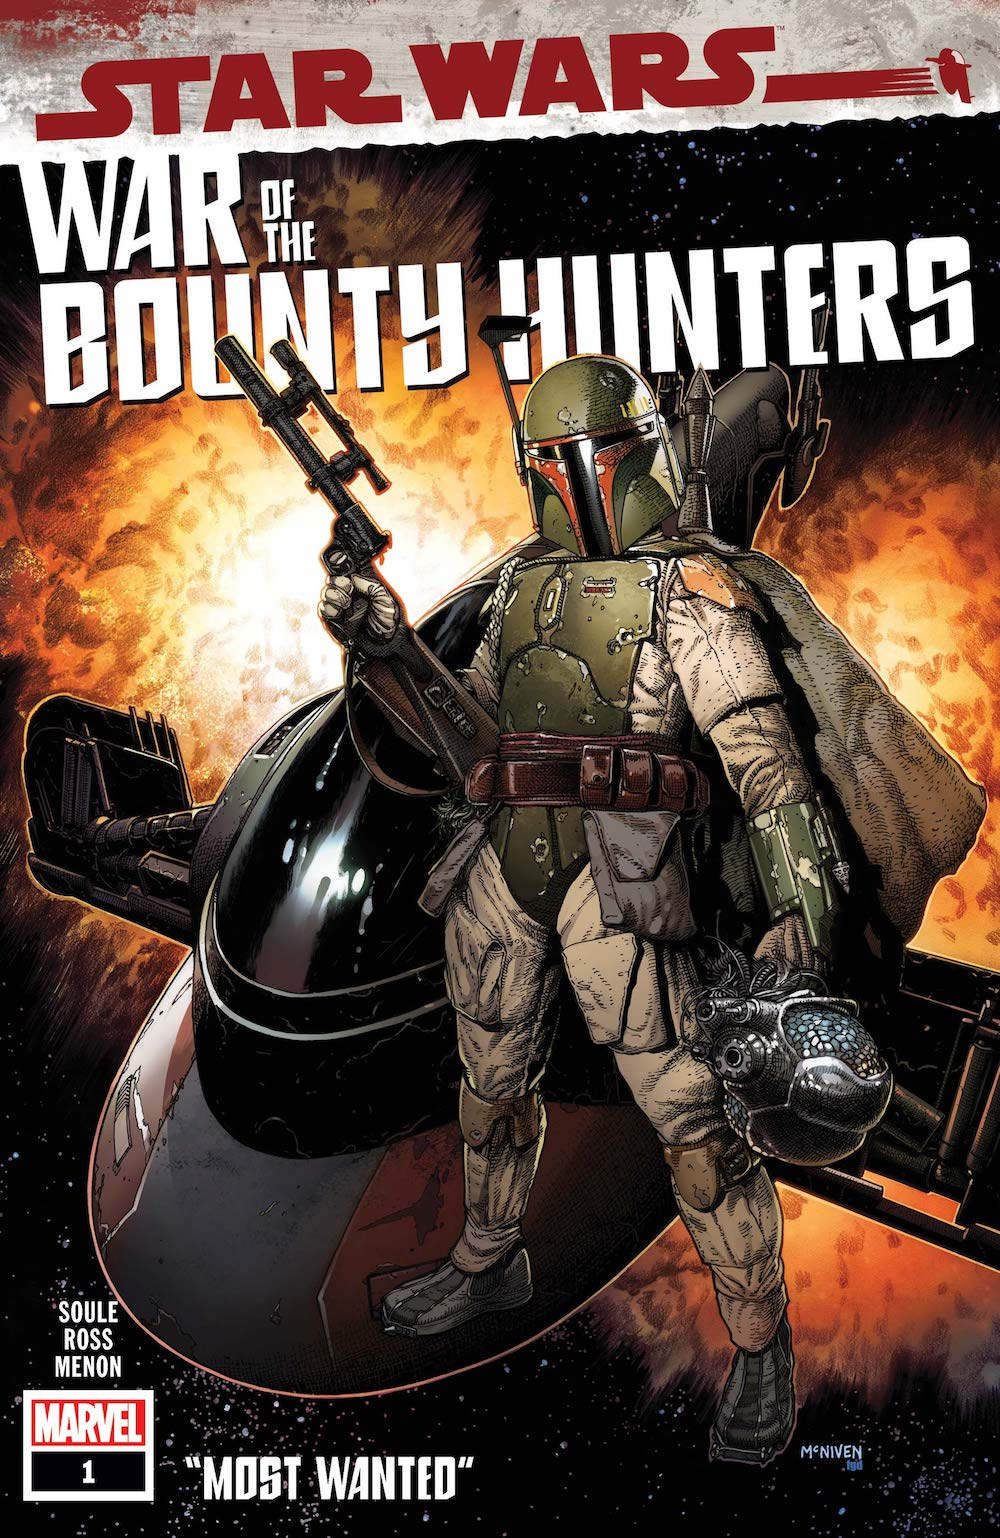 Marvel Comics Star Wars: War of the Bounty Hunters #1 Cover by Steve McNiven